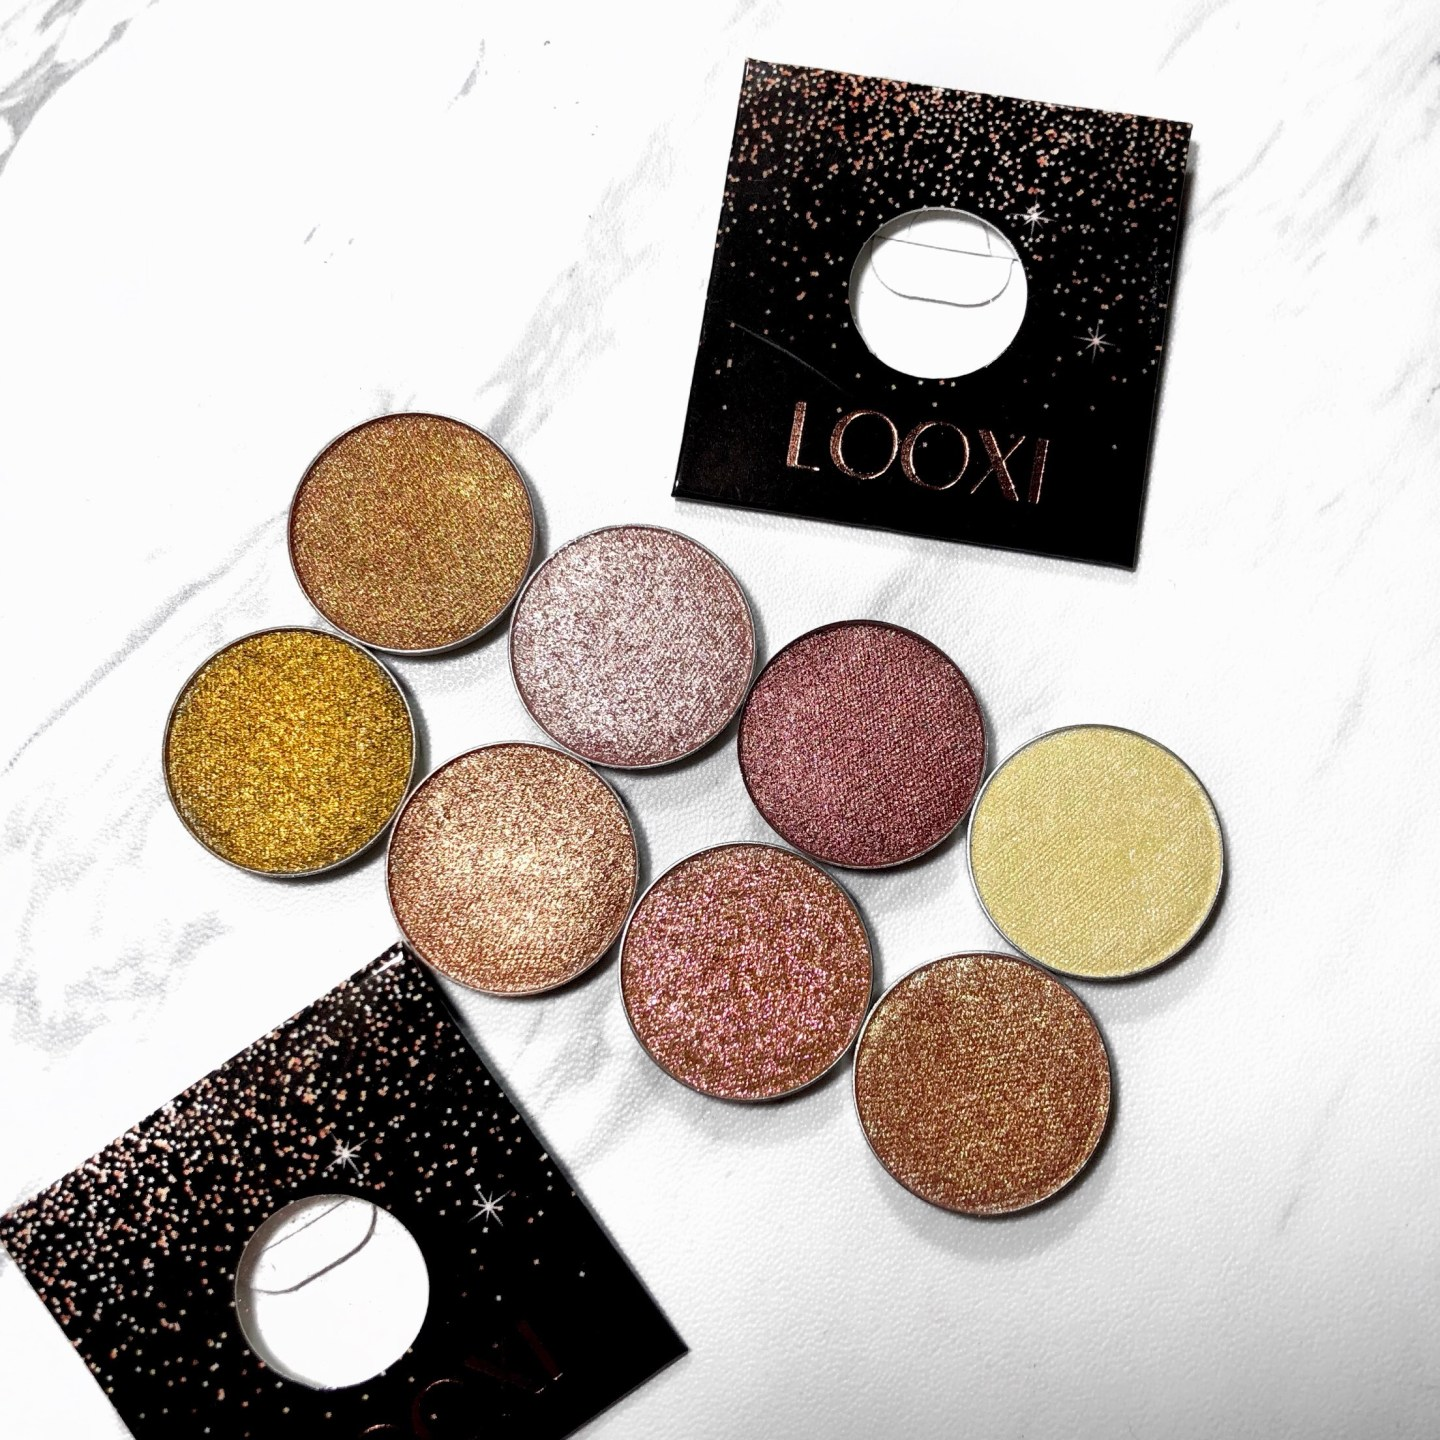 Looxi Beauty Shimmer Eye Shadows